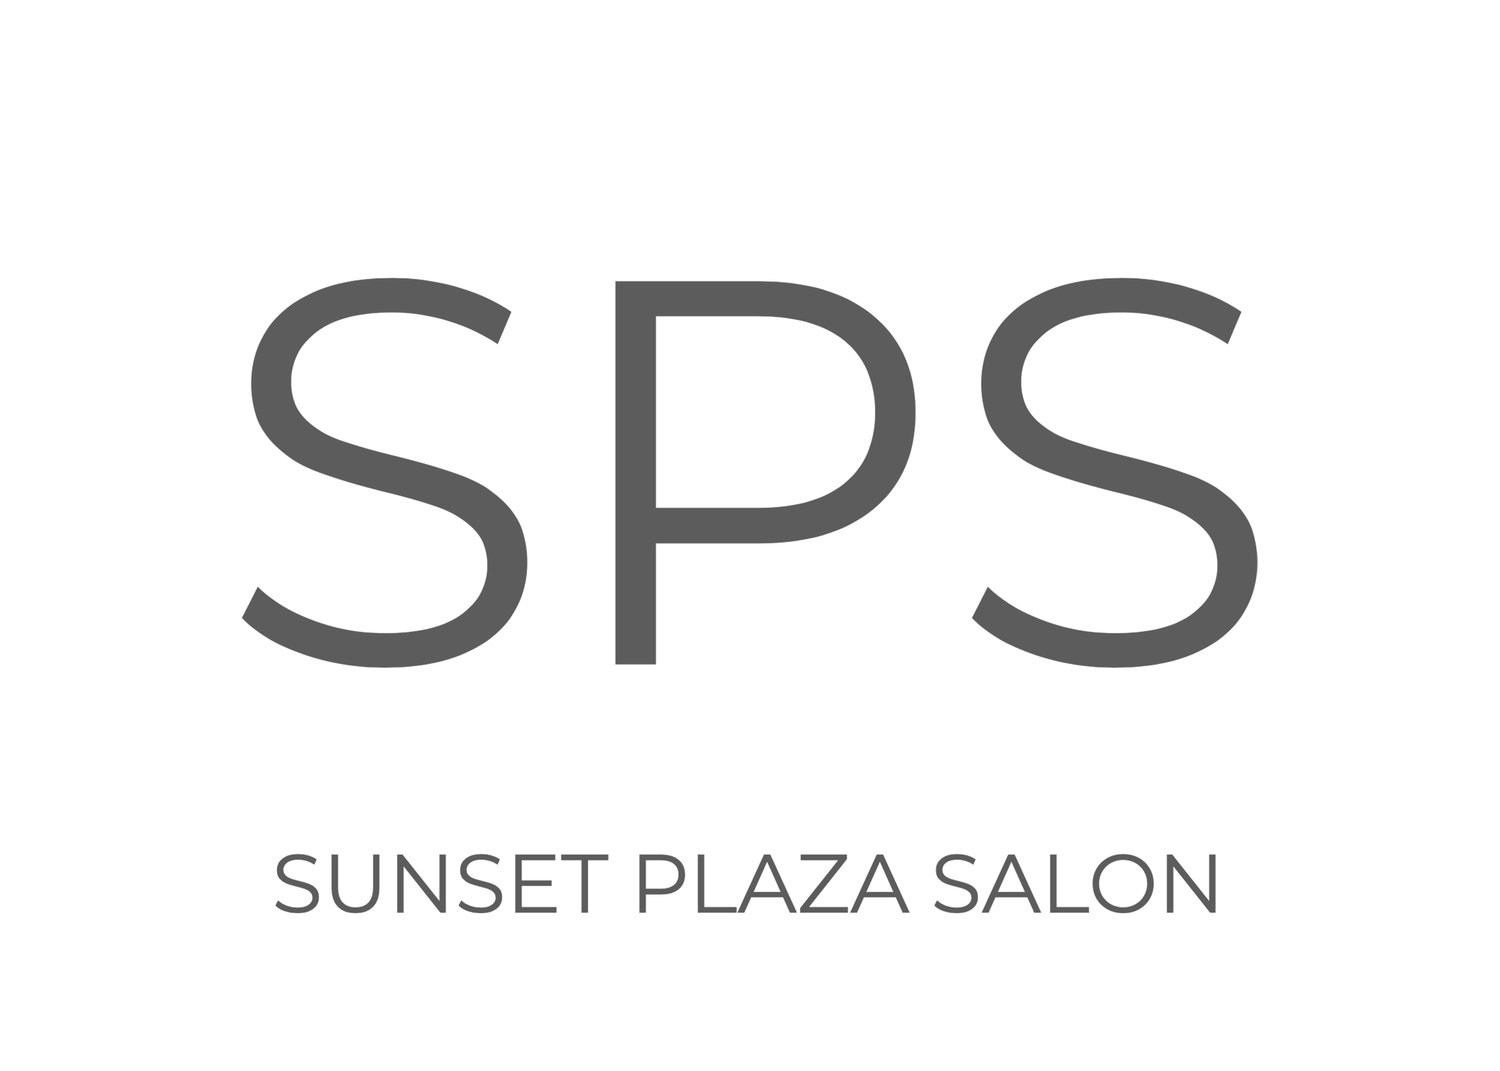 Sunset Plaza Salon